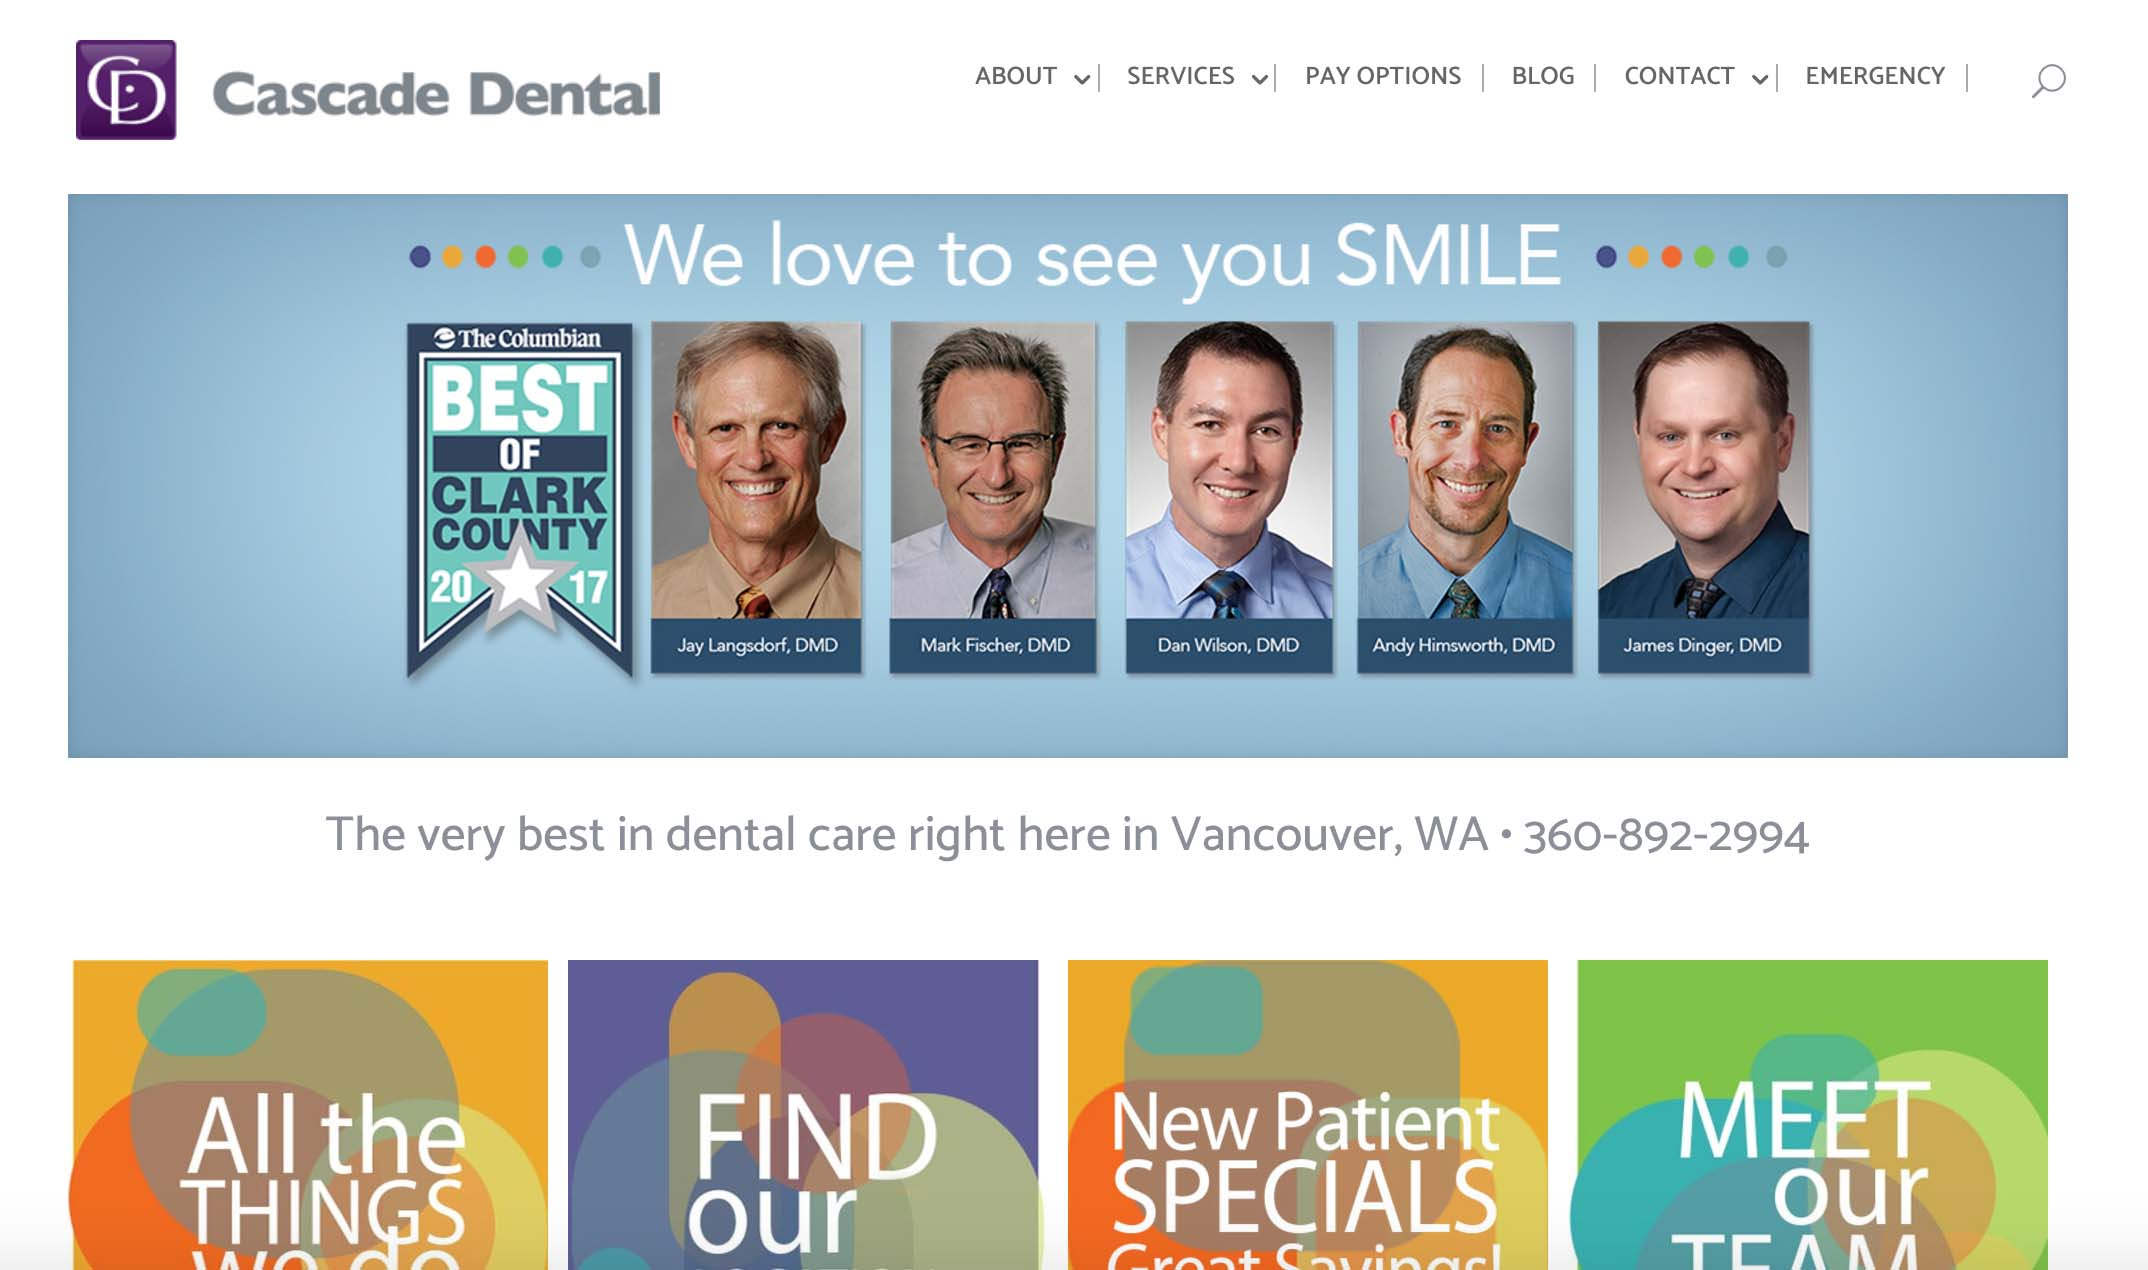 Cascade Dental Pro Website & Digital Marketing